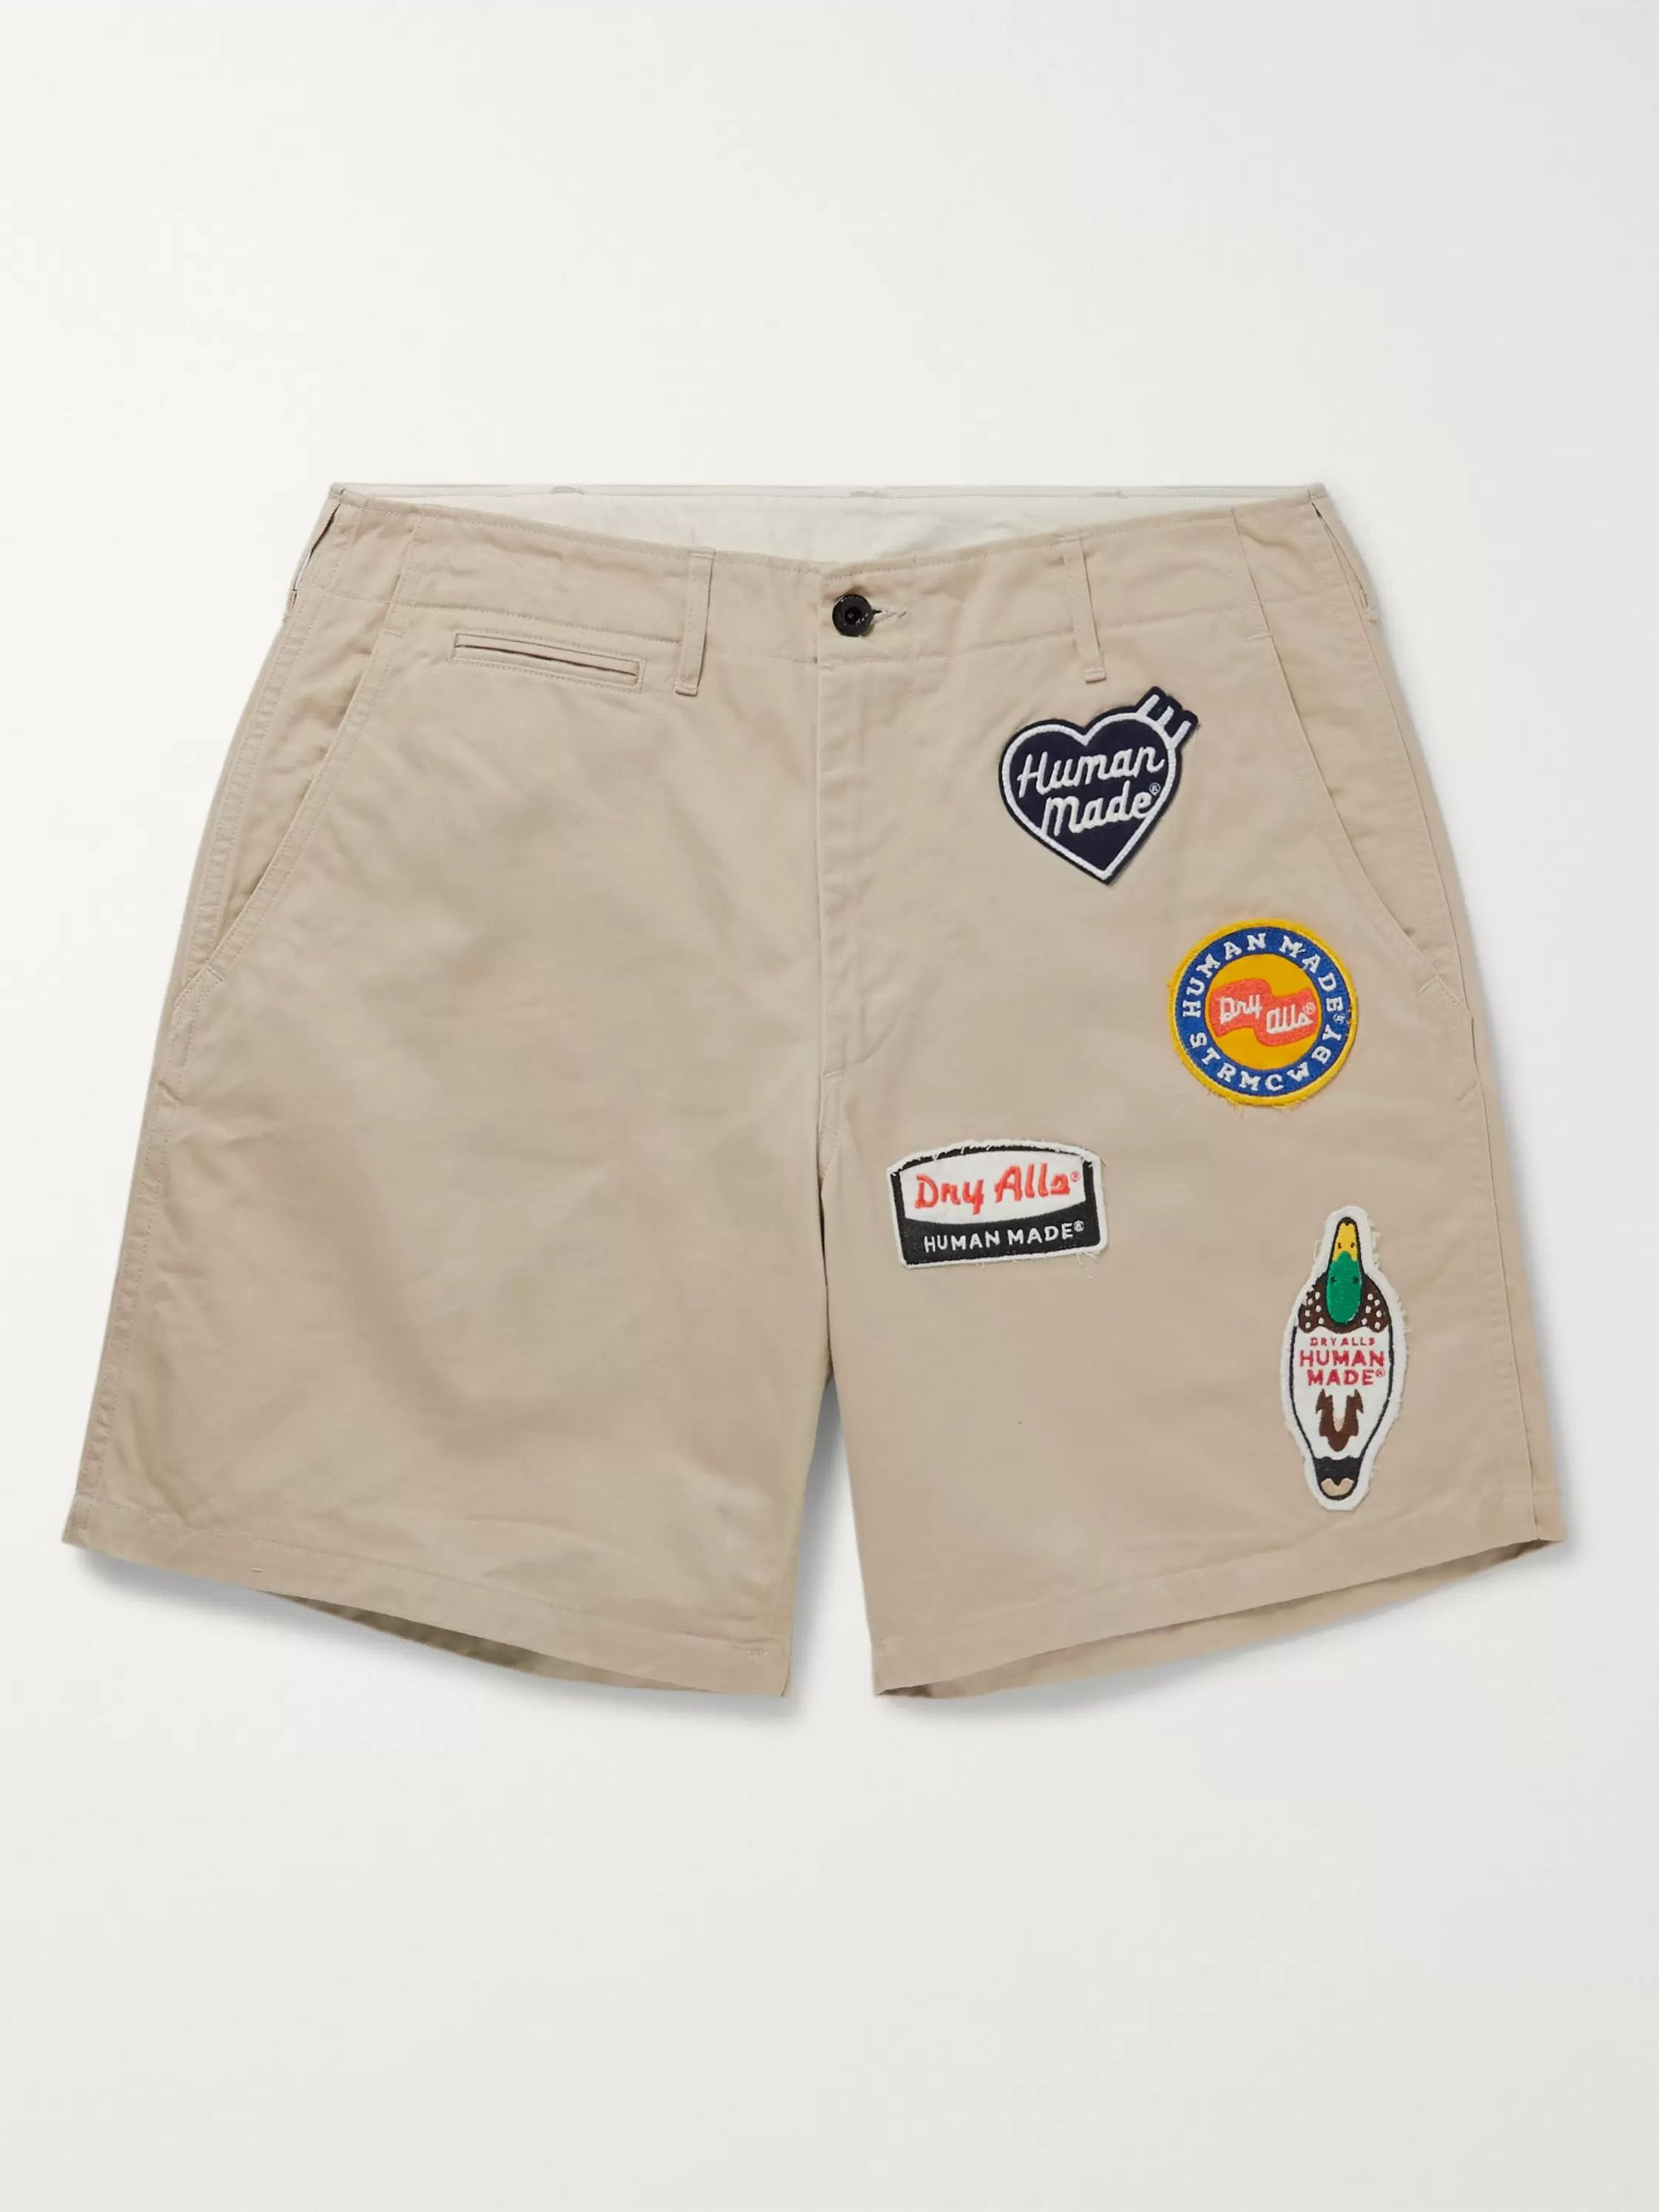 Human Made Wappen-Appliqued Cotton-Twill Chino Shorts,Beige